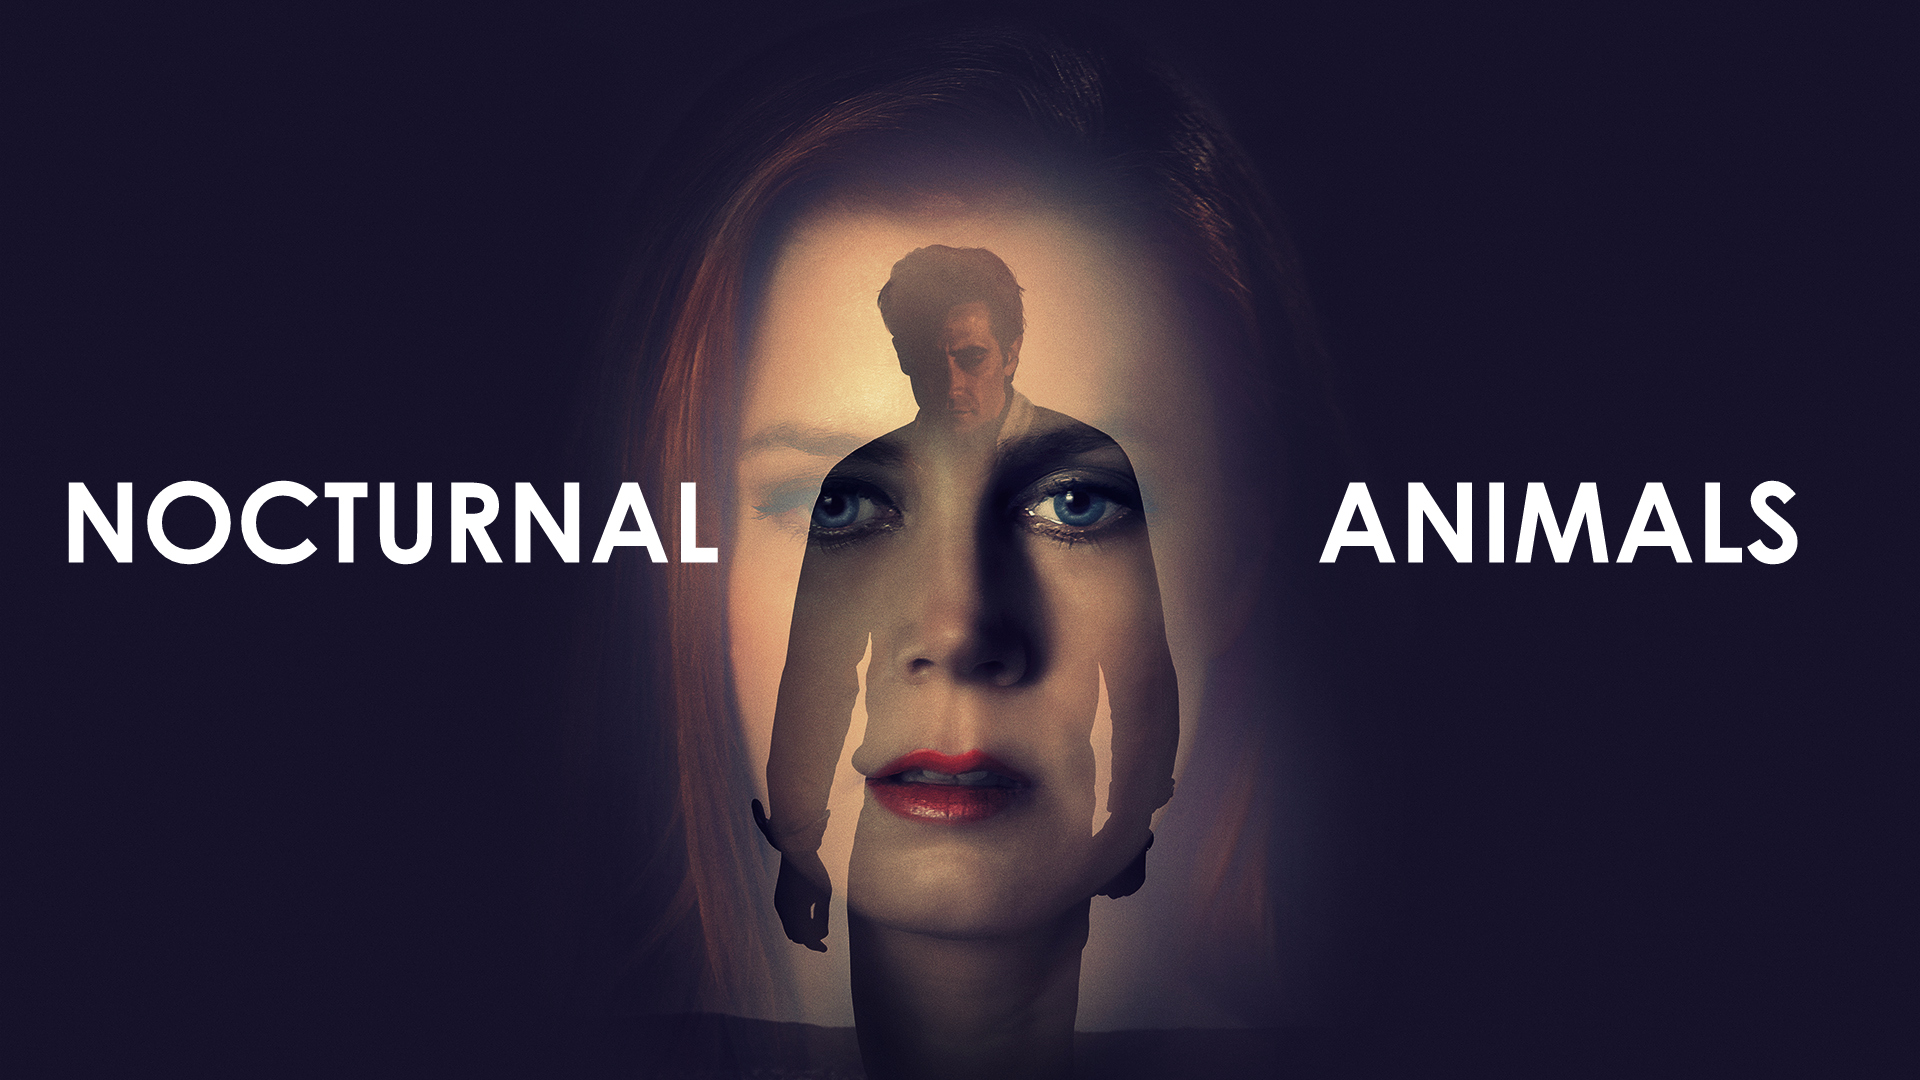 Amy Adams Nude In Nocturnal Animals nocturnal animals review (2016) | full analysis and ending